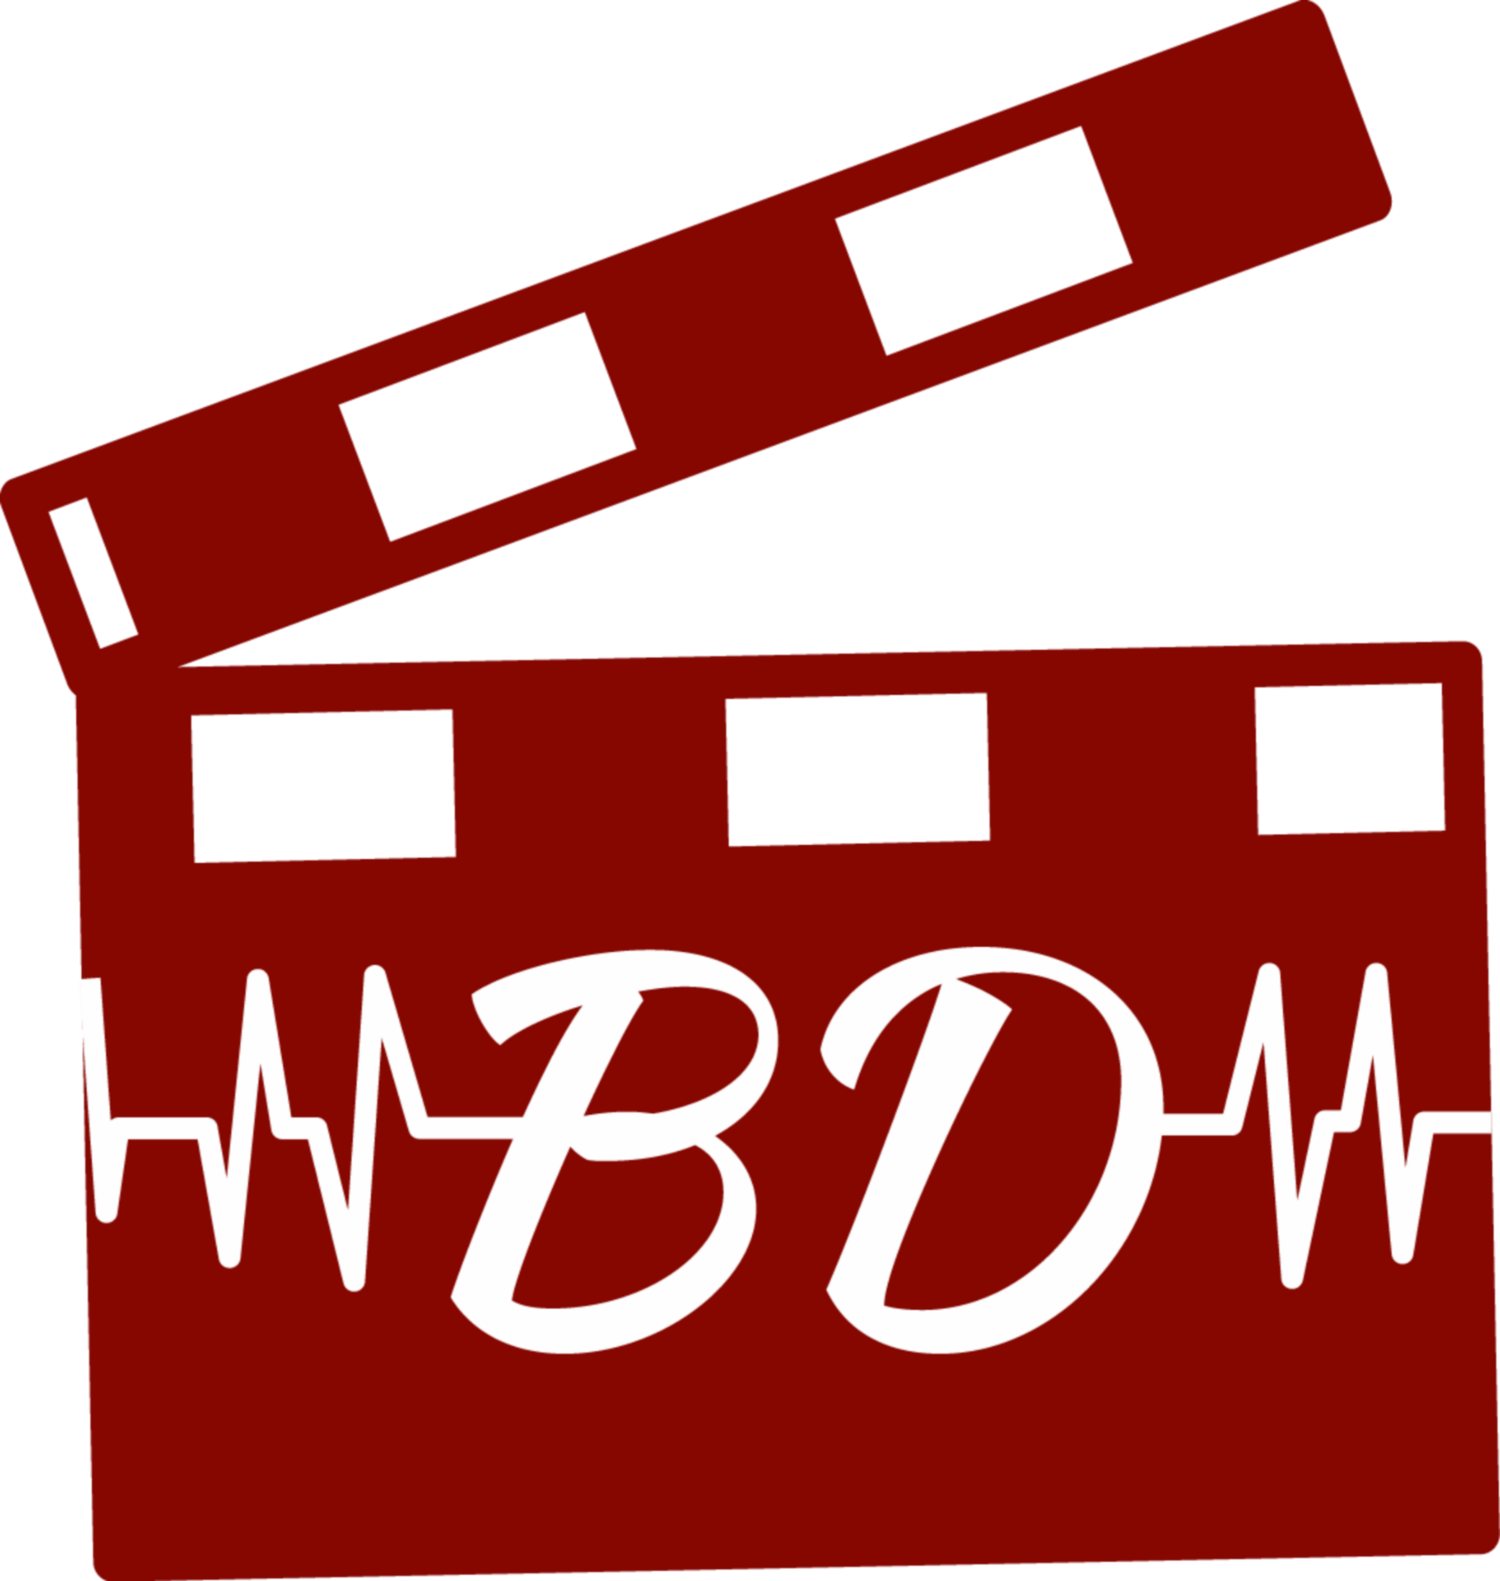 Film clipart obsolete. Busy doctors productions ltd